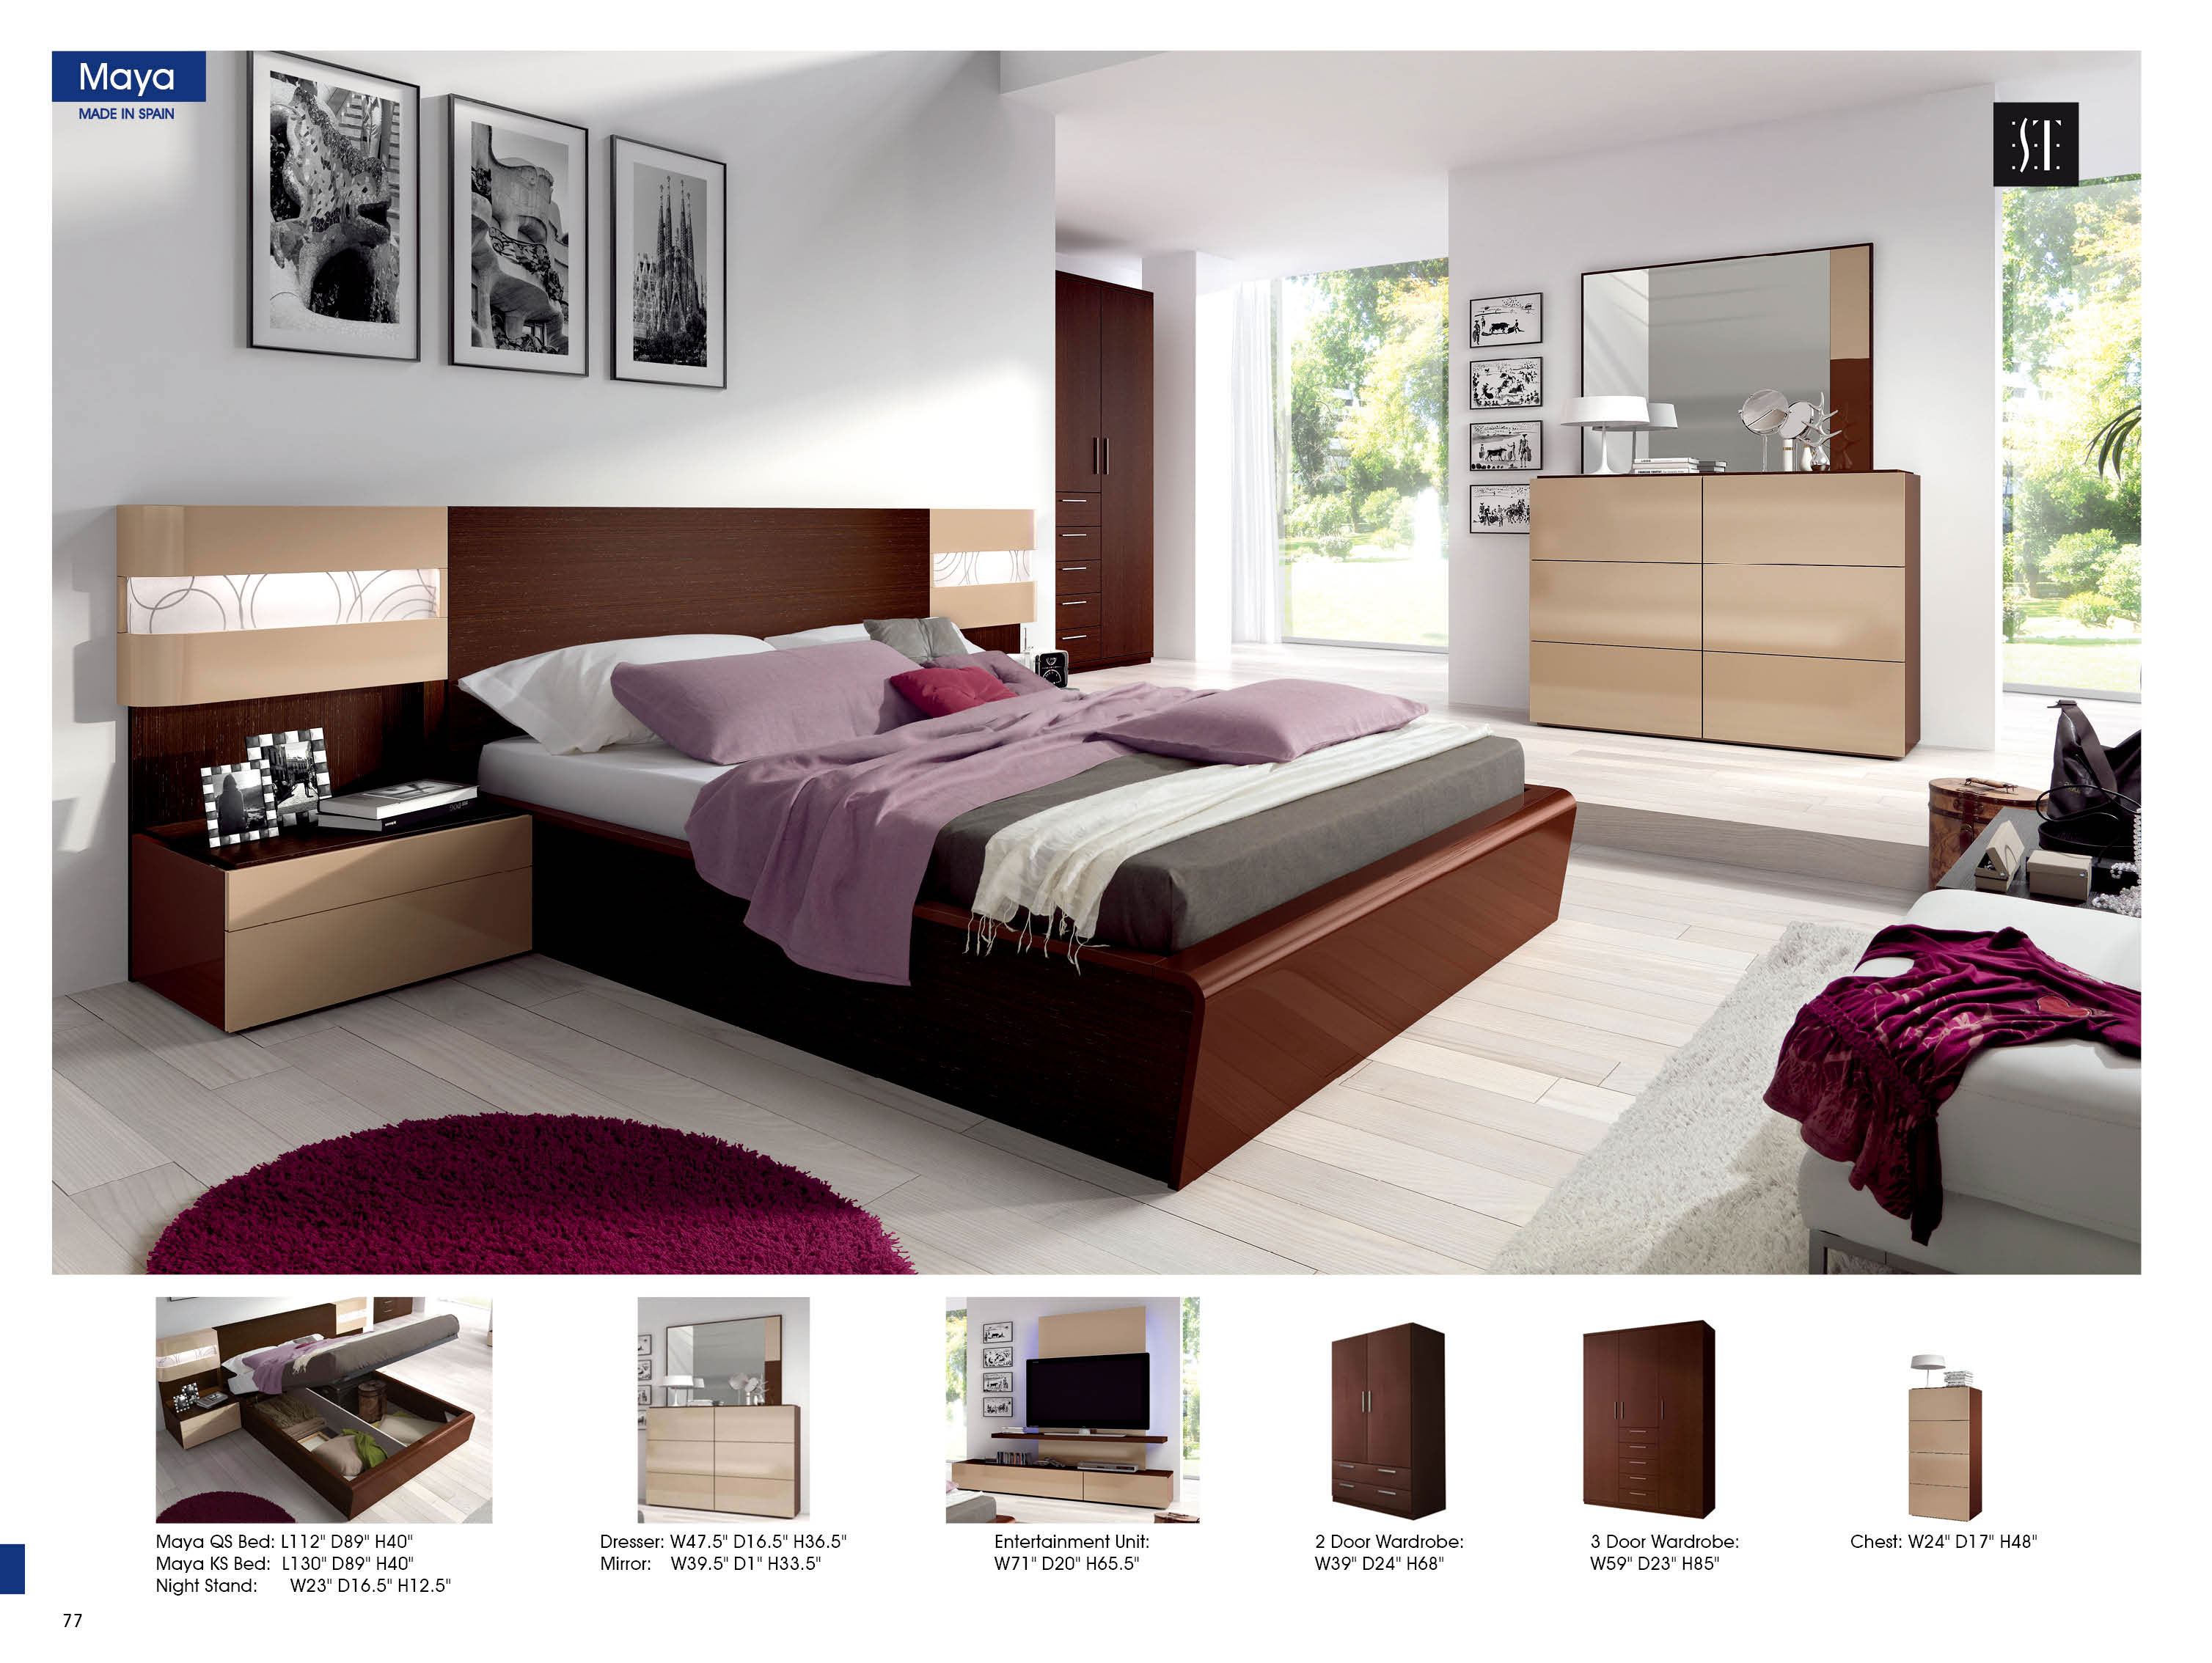 Maya, Modern Bedrooms, Bedroom Furniture